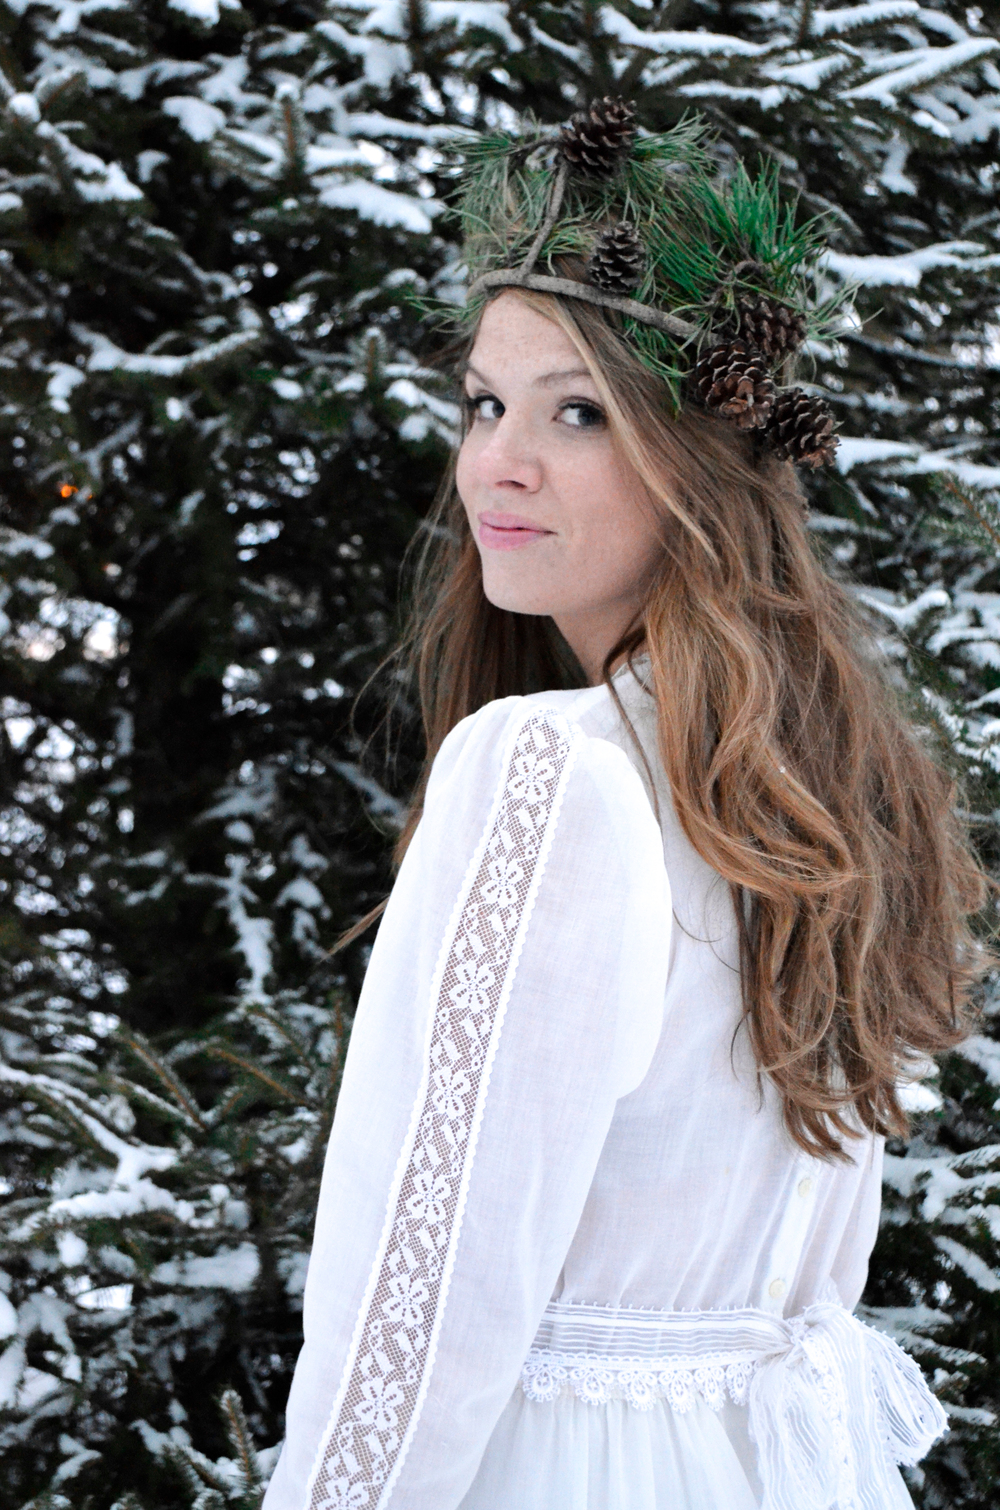 The Lion the Witch and the Wardrobe Inspired Styled Winter Photography Shoot (17 of 20).jpg